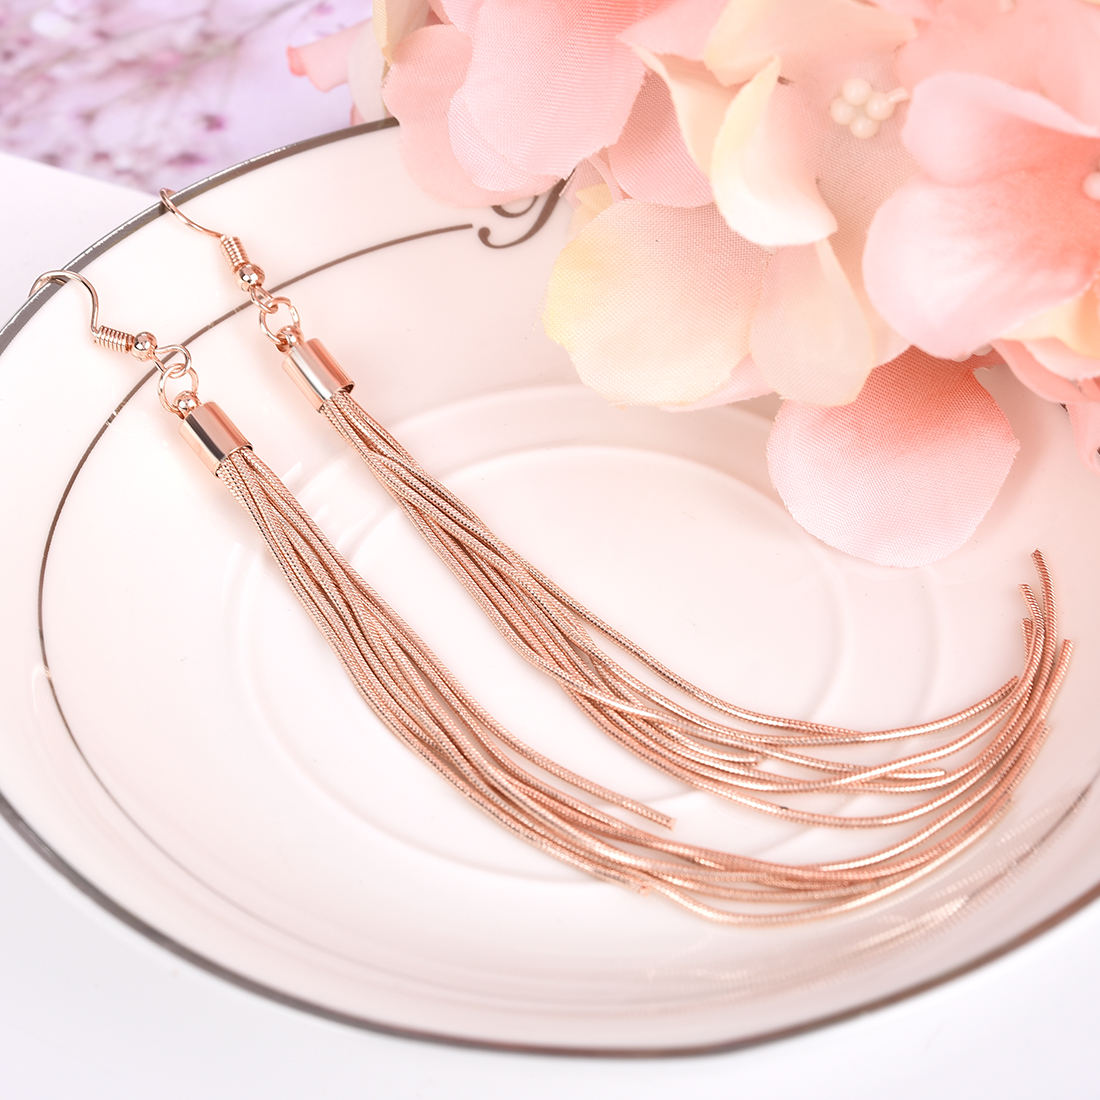 Jiayiqi Vintage Long Earrings Silver color Tassel Earrings High Quality Earrings Fashion Jewelry for Women Best Gift 2018 3